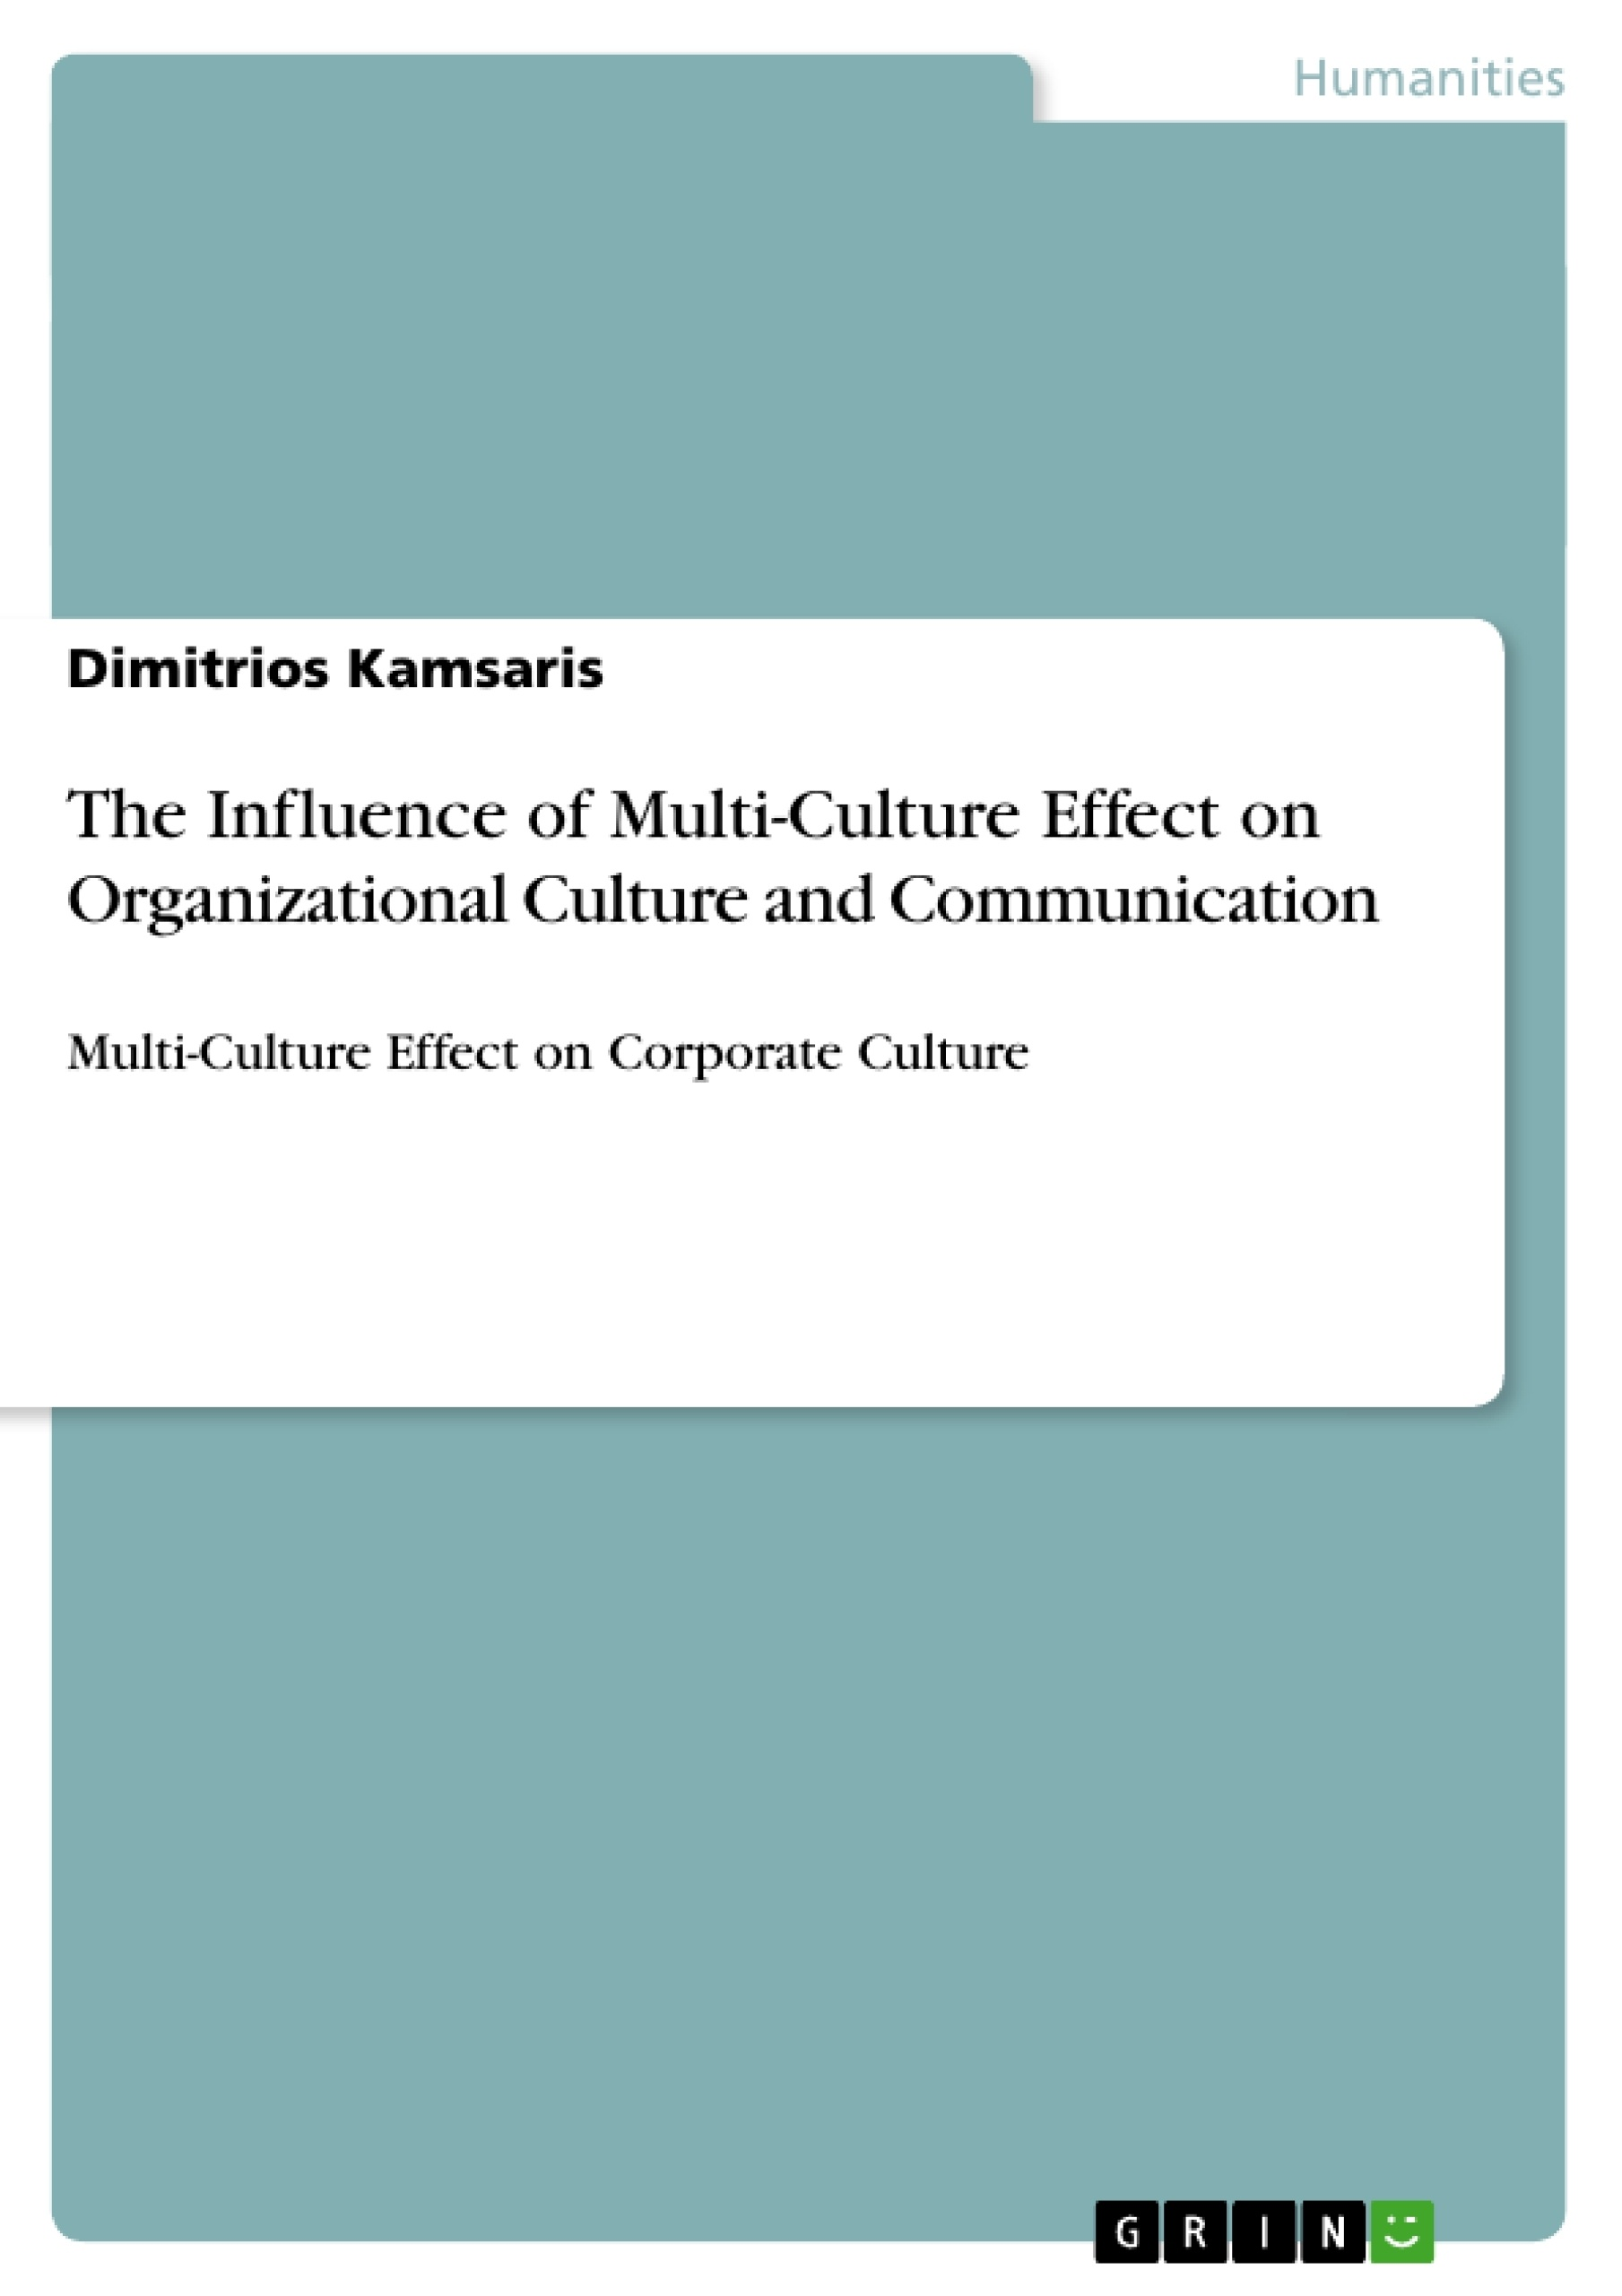 Title: The Influence of Multi-Culture Effect on Organizational Culture and Communication